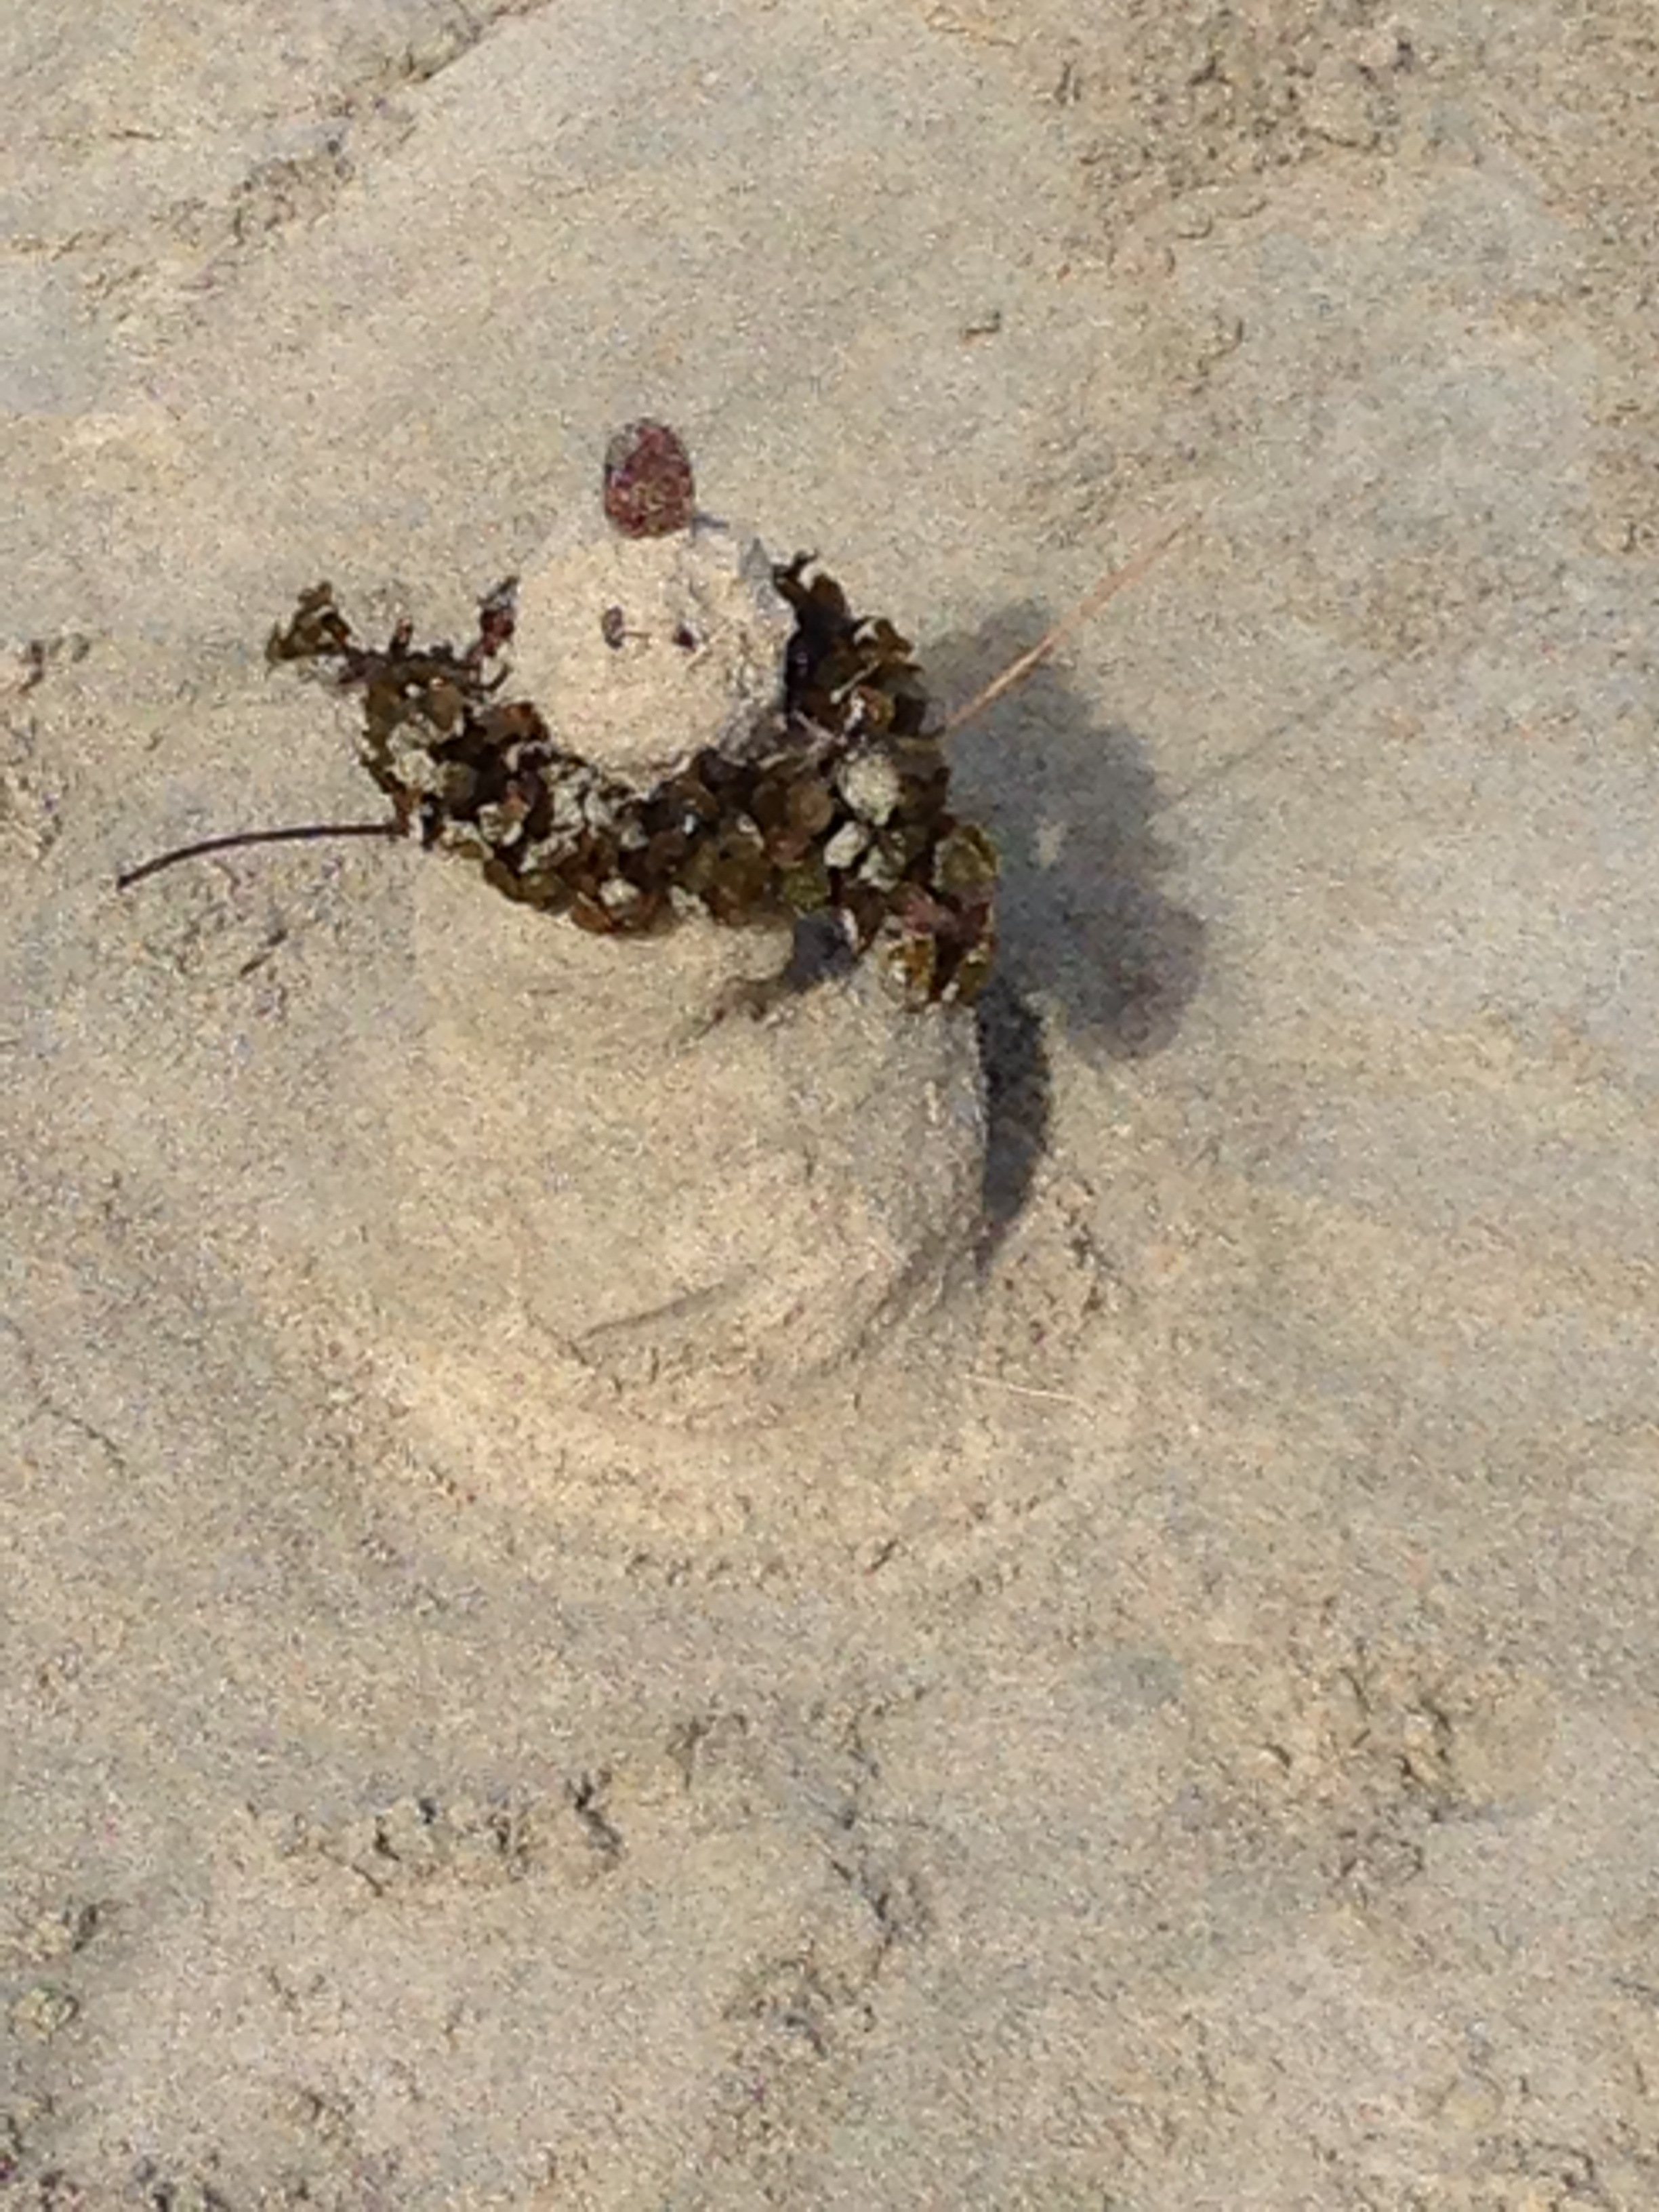 The Sandman. He comes for you when you're sleeping.